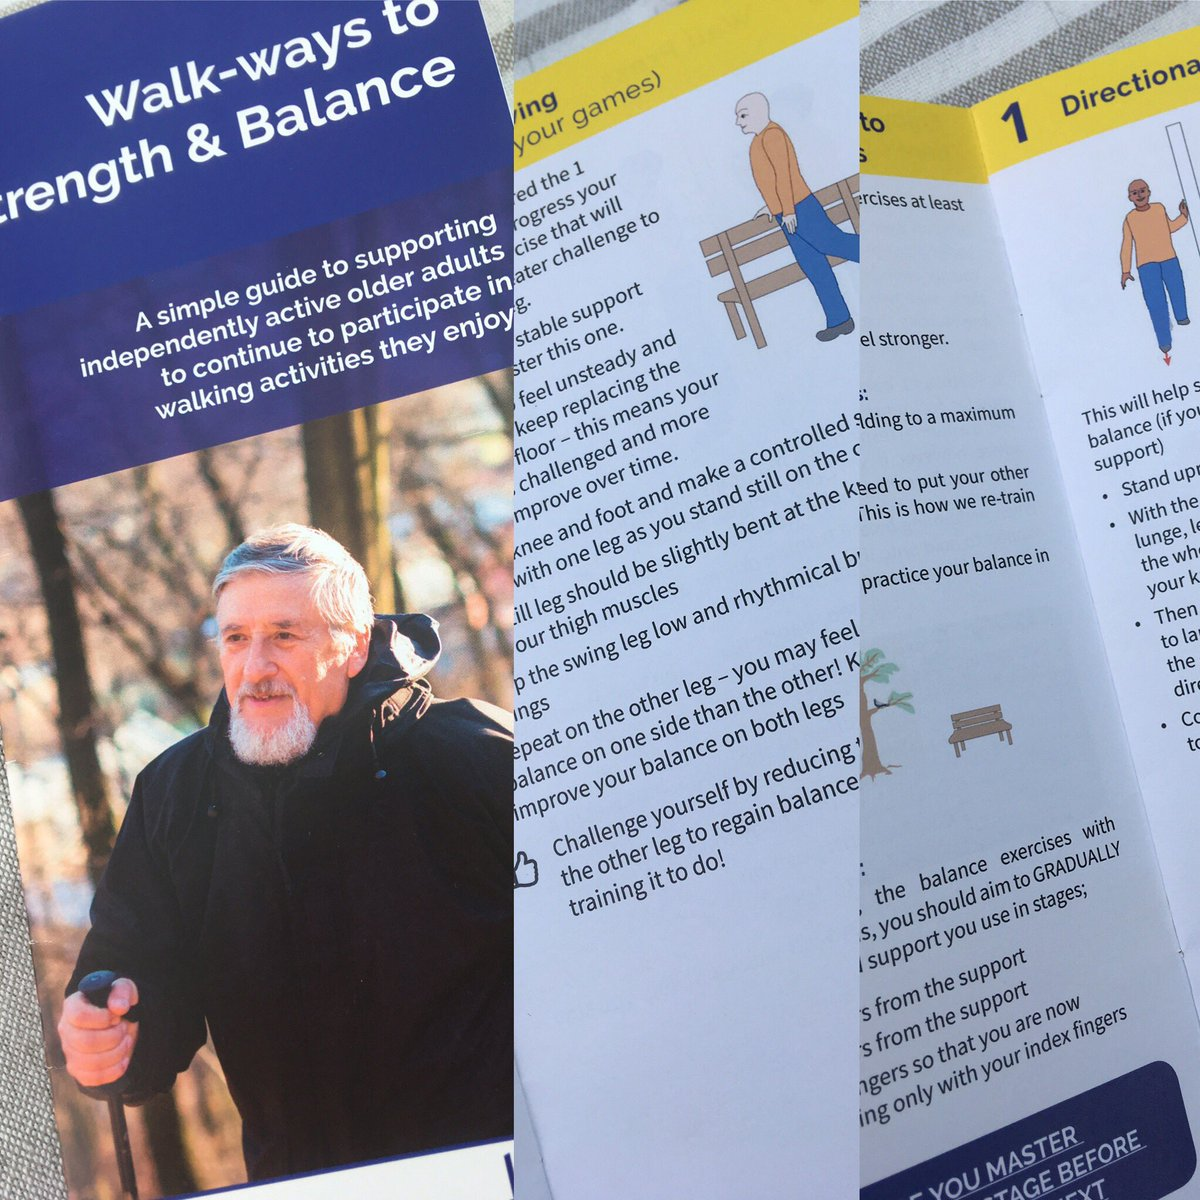 test Twitter Media - Sneak preview of walk-ways to #strength and #balance workshop next week in Chichester with #walk leaders and #walking sports leaders - embedding strength and balance 'messages' into walking activities and promoting S&B throughout the week https://t.co/f5GvgYnl8S